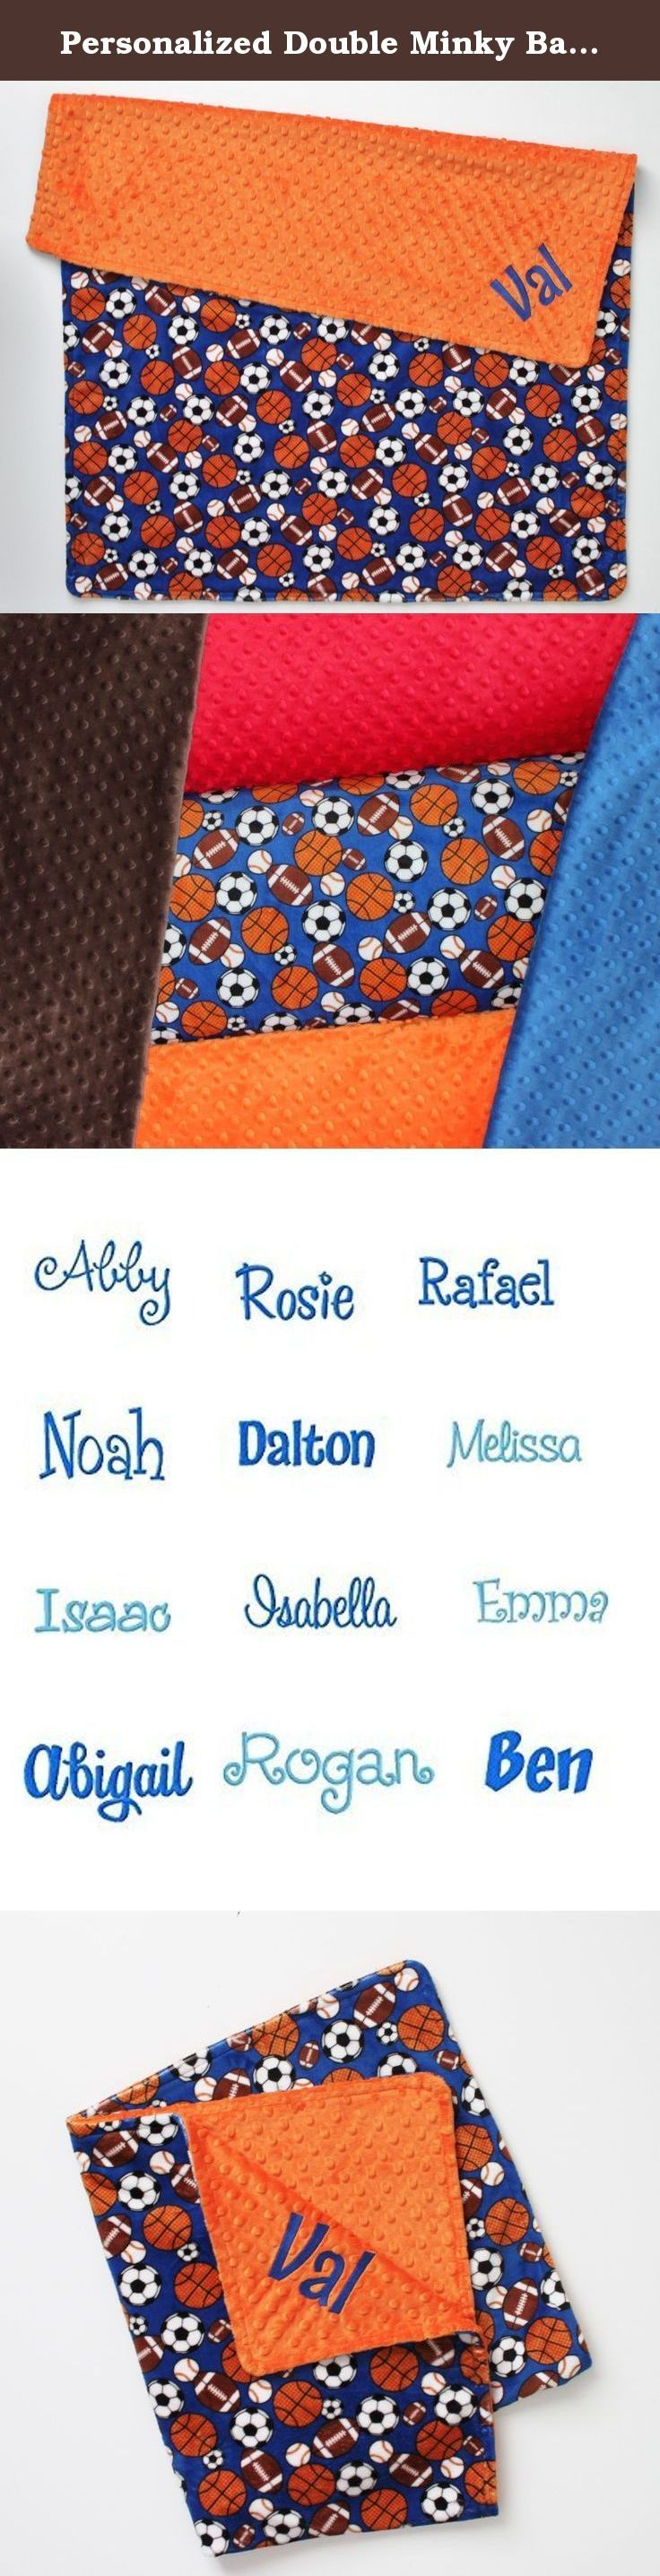 Personalized Double Minky Baby Blanket - Sports - Baseball, Football, Soccer, Baseball. Blanket is made with a sports printed minky. Blanket is backed with a second dot minky. Embroidered with baby's name. Choose your size, name and font. If you are unsure please measure it out to confirm you are getting the size you want. Machine wash cold, tumble dry low. No fabric softeners and do not iron minky.